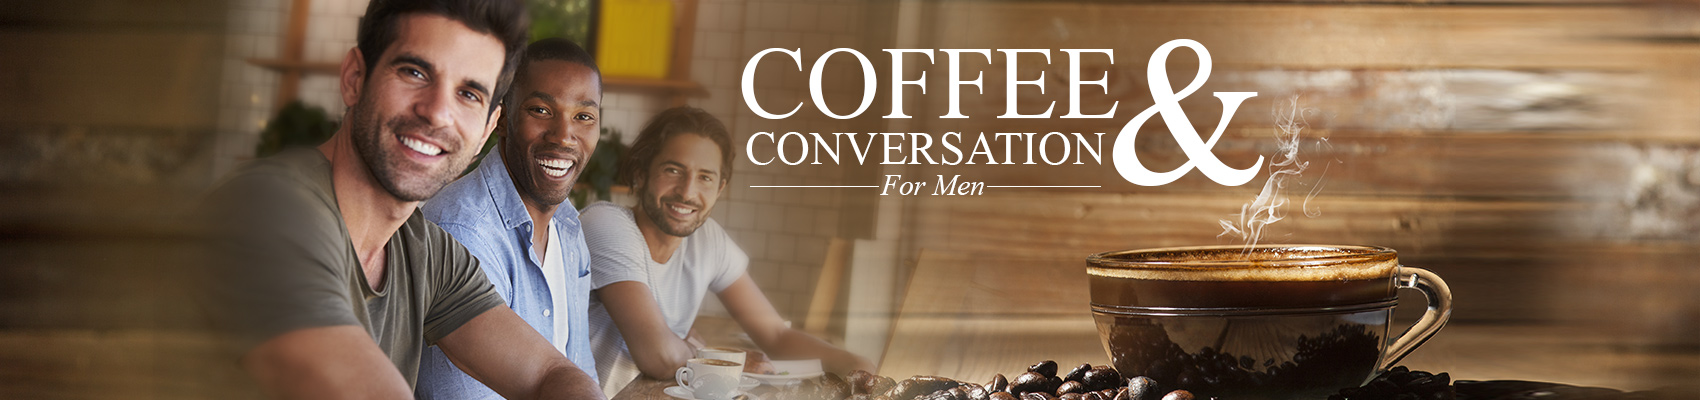 slide_coffee_and_conversation